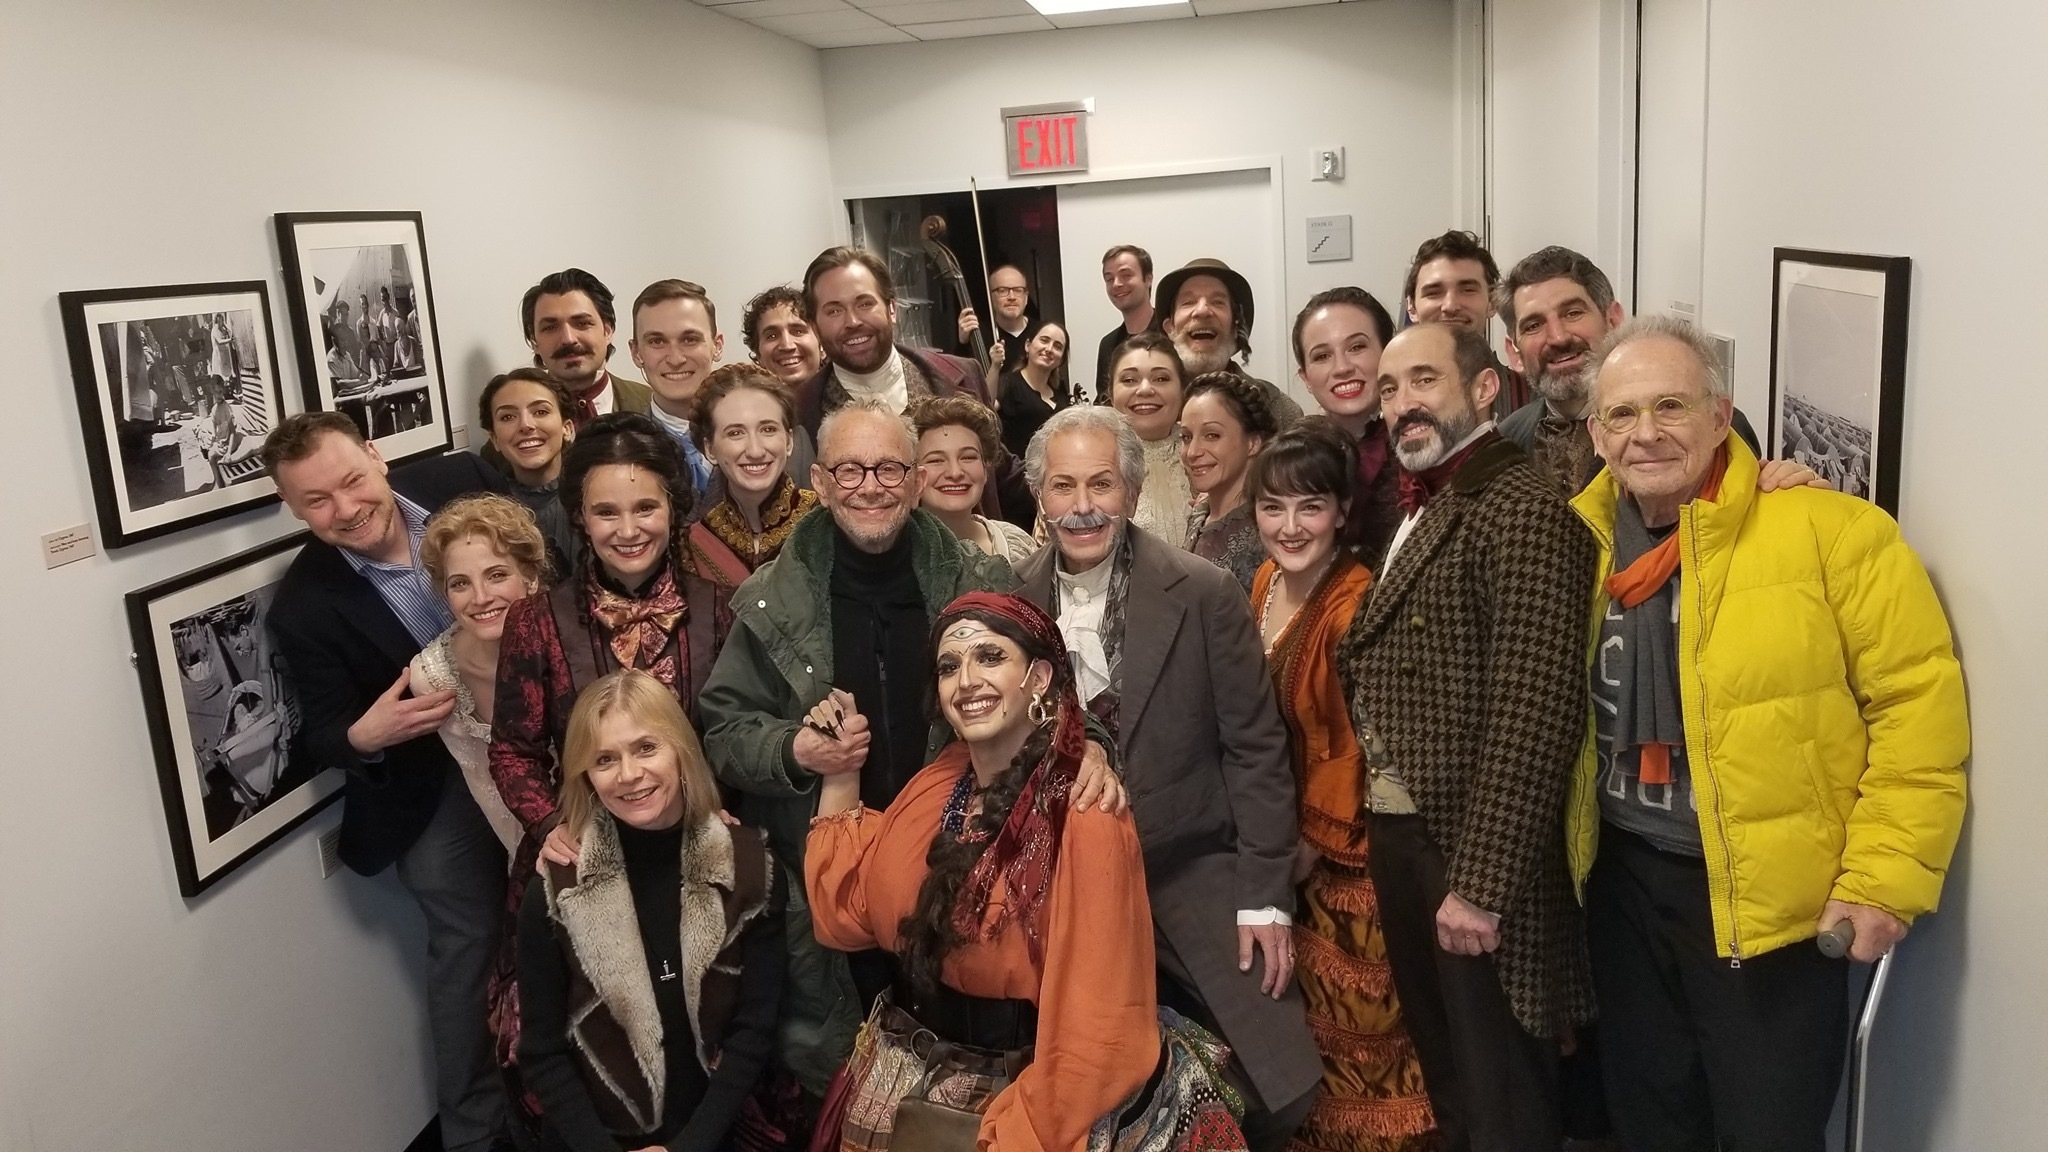 <p><em>The Sor­cer­ess </em>cast back­stage (Yashin­sky, cen­ter) with direc­tor Motl Did­ner (far left), <em>Fid­dler</em> direc­tor Joel Grey (cen­ter in green), and actor Ron Rifkin (far&nbsp;right).</p>